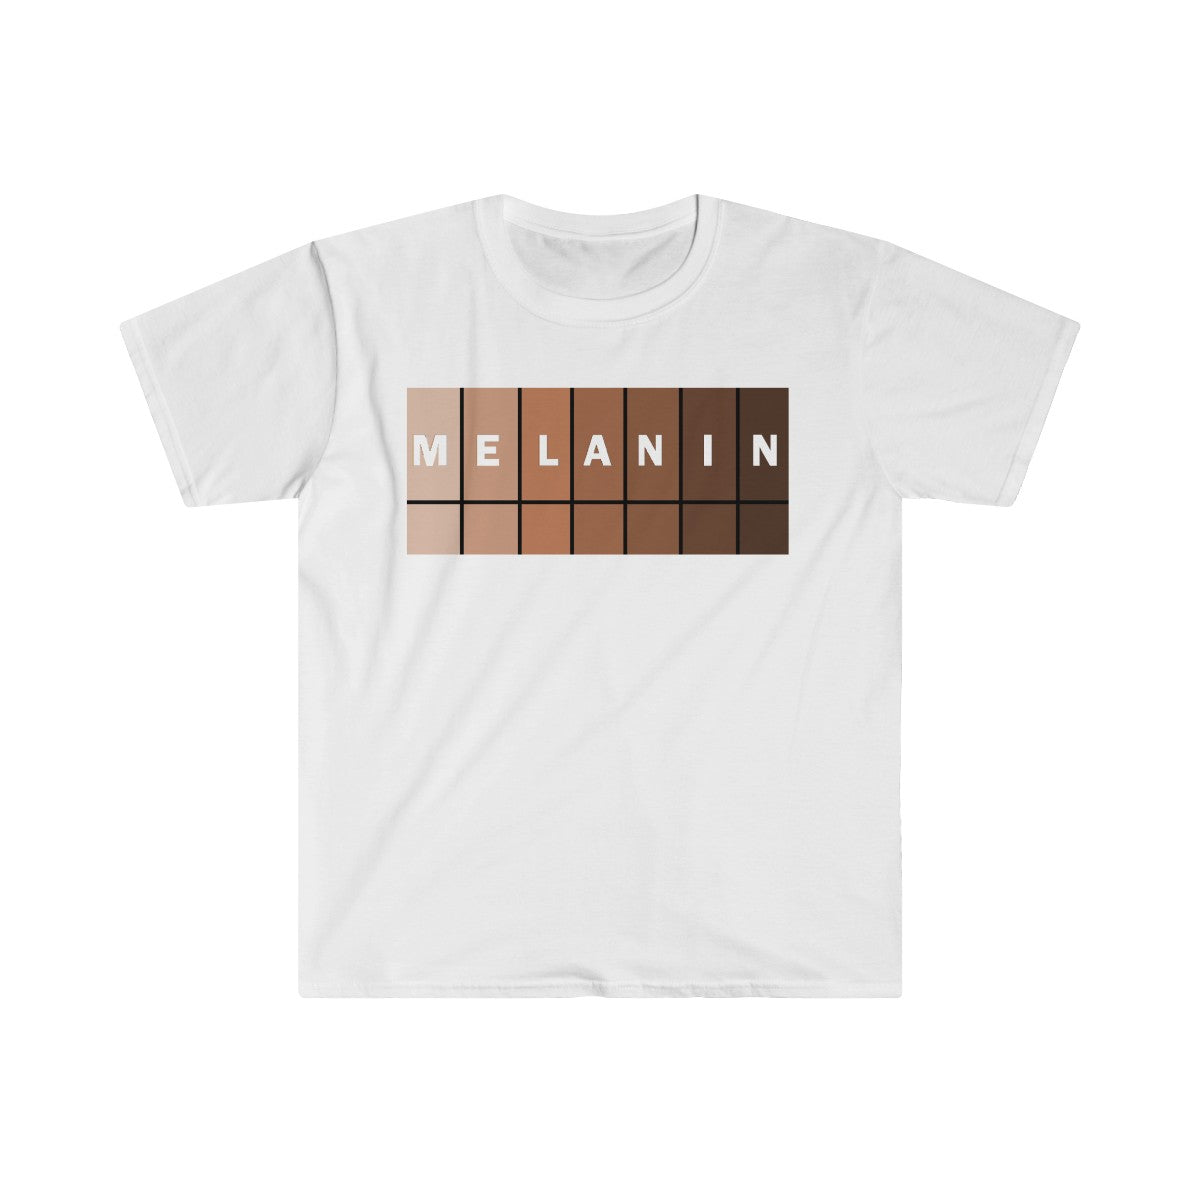 Melanin Fitted Short Sleeve Tee men's